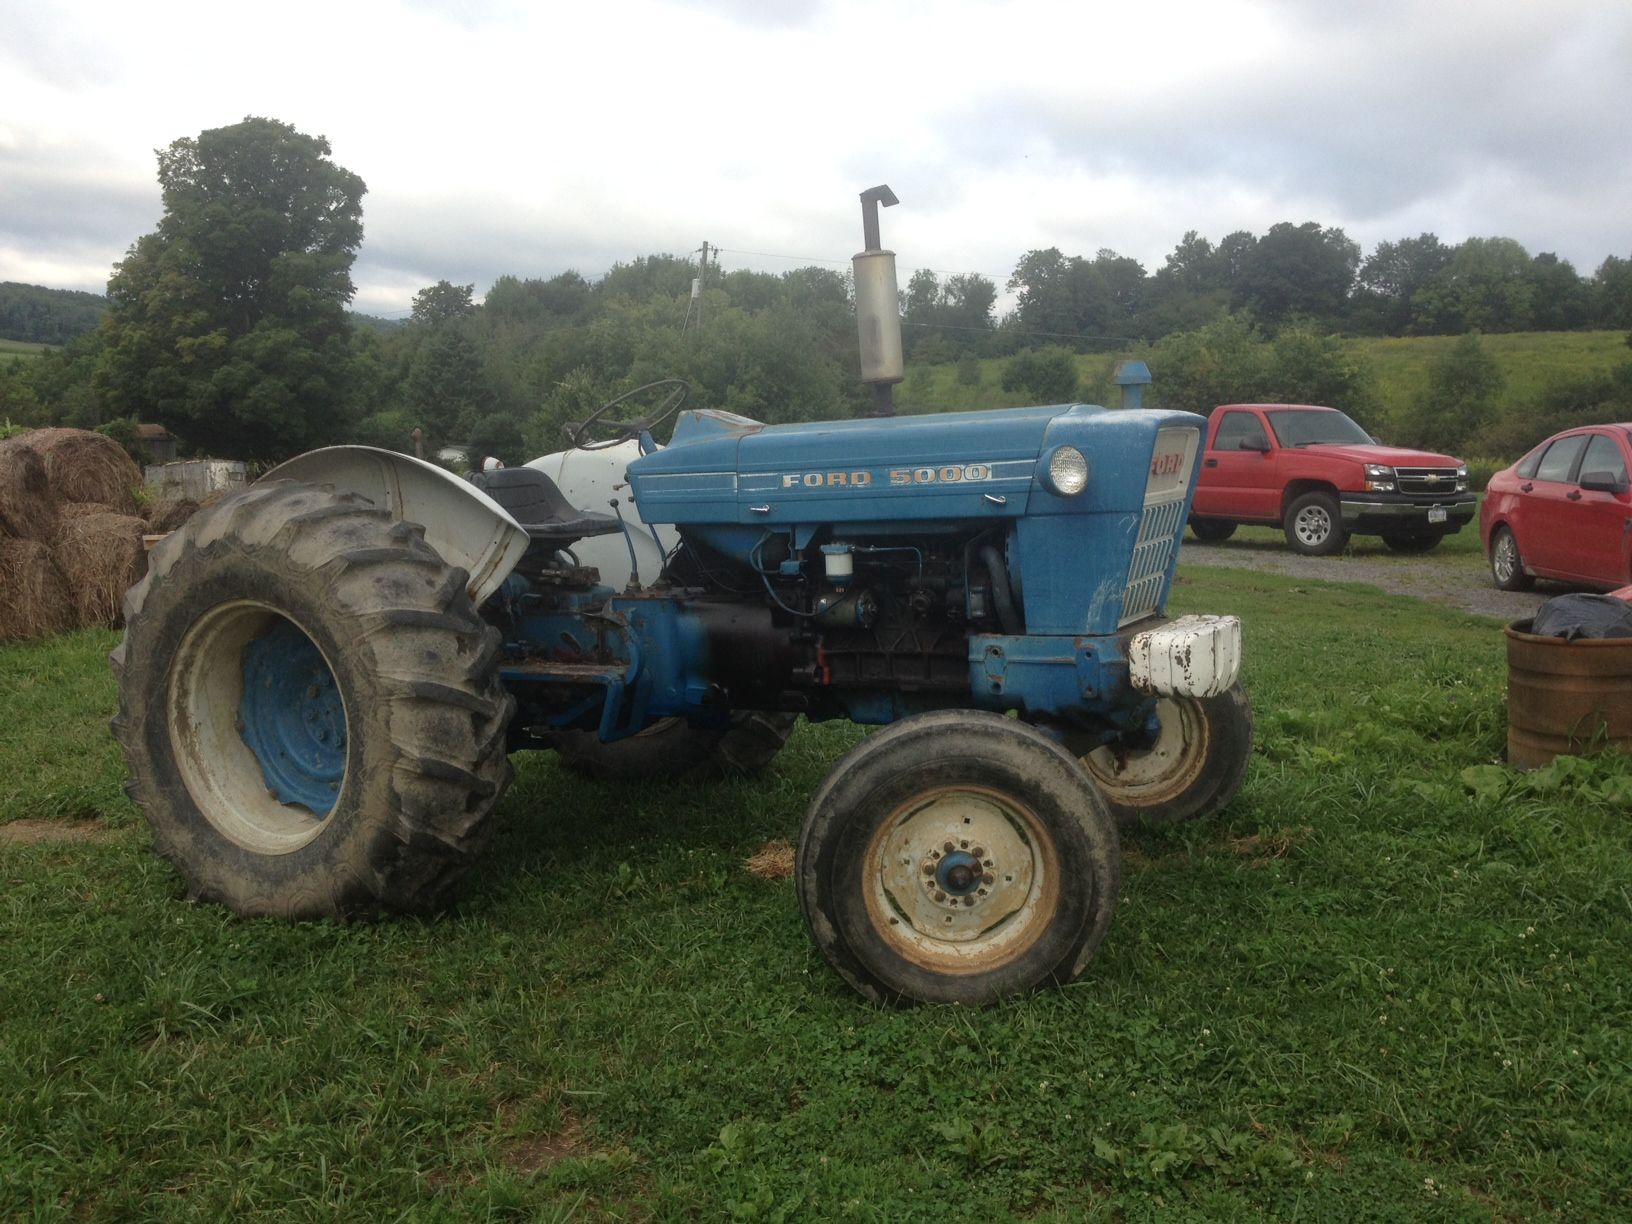 Show home build gas powered mini tractors - This Is A An Older 65 Horsepower Tractor That Would Be A Good Choice For A